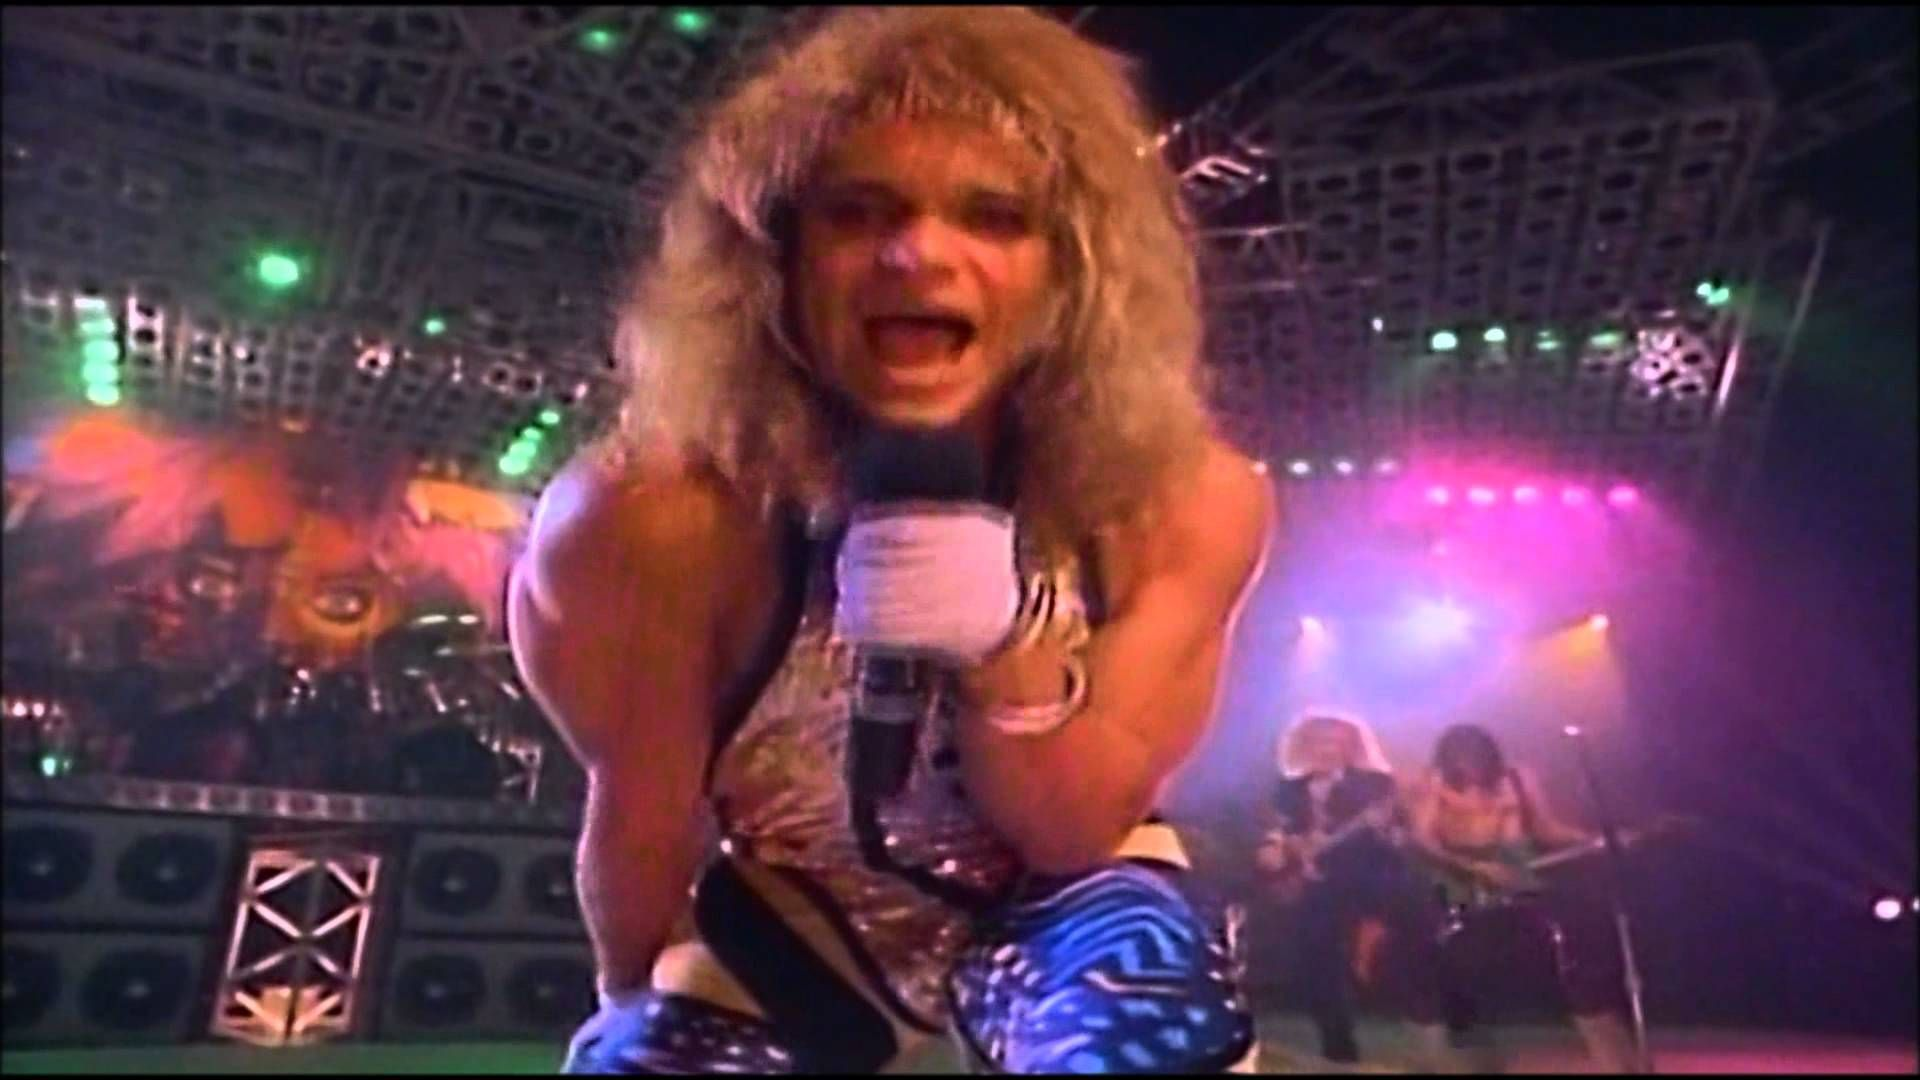 David Lee Roth Yankee Rose Full Version Hd Give Me A Bottle Of Anything And A Glazed Doughnut To Go David Lee Roth Musical Hair Van Halen